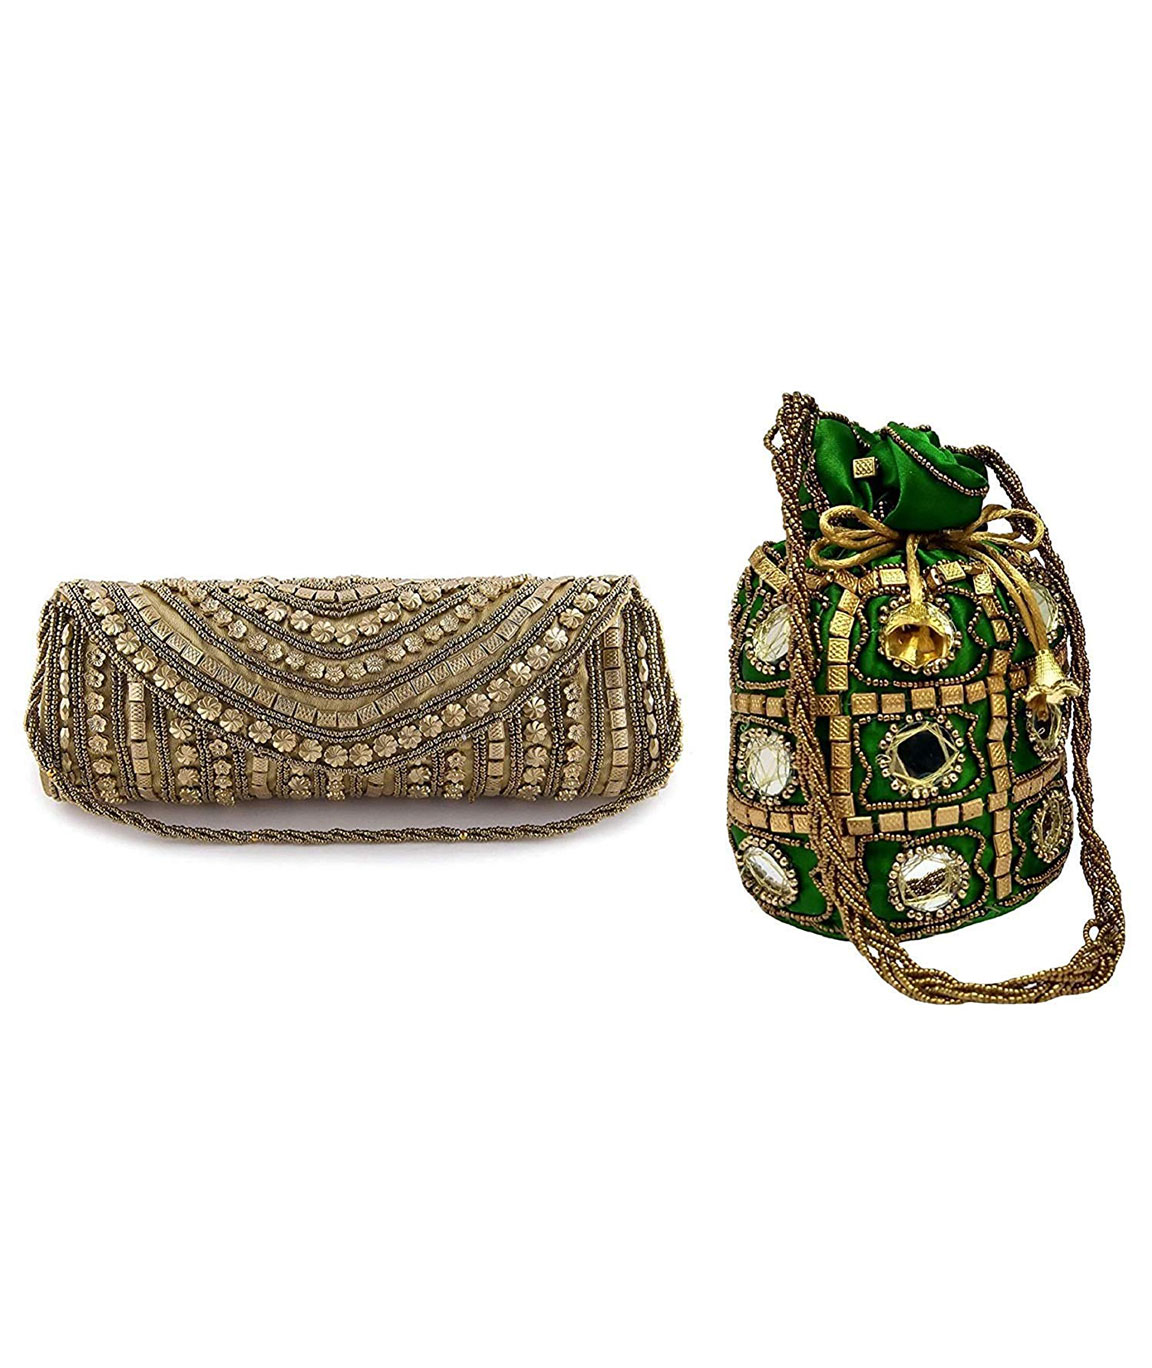 DN Enterprises Latest Potli & Clutch Combo For Women/Girls Fancy Potli Bag & Bridal Clutch(green&golden)